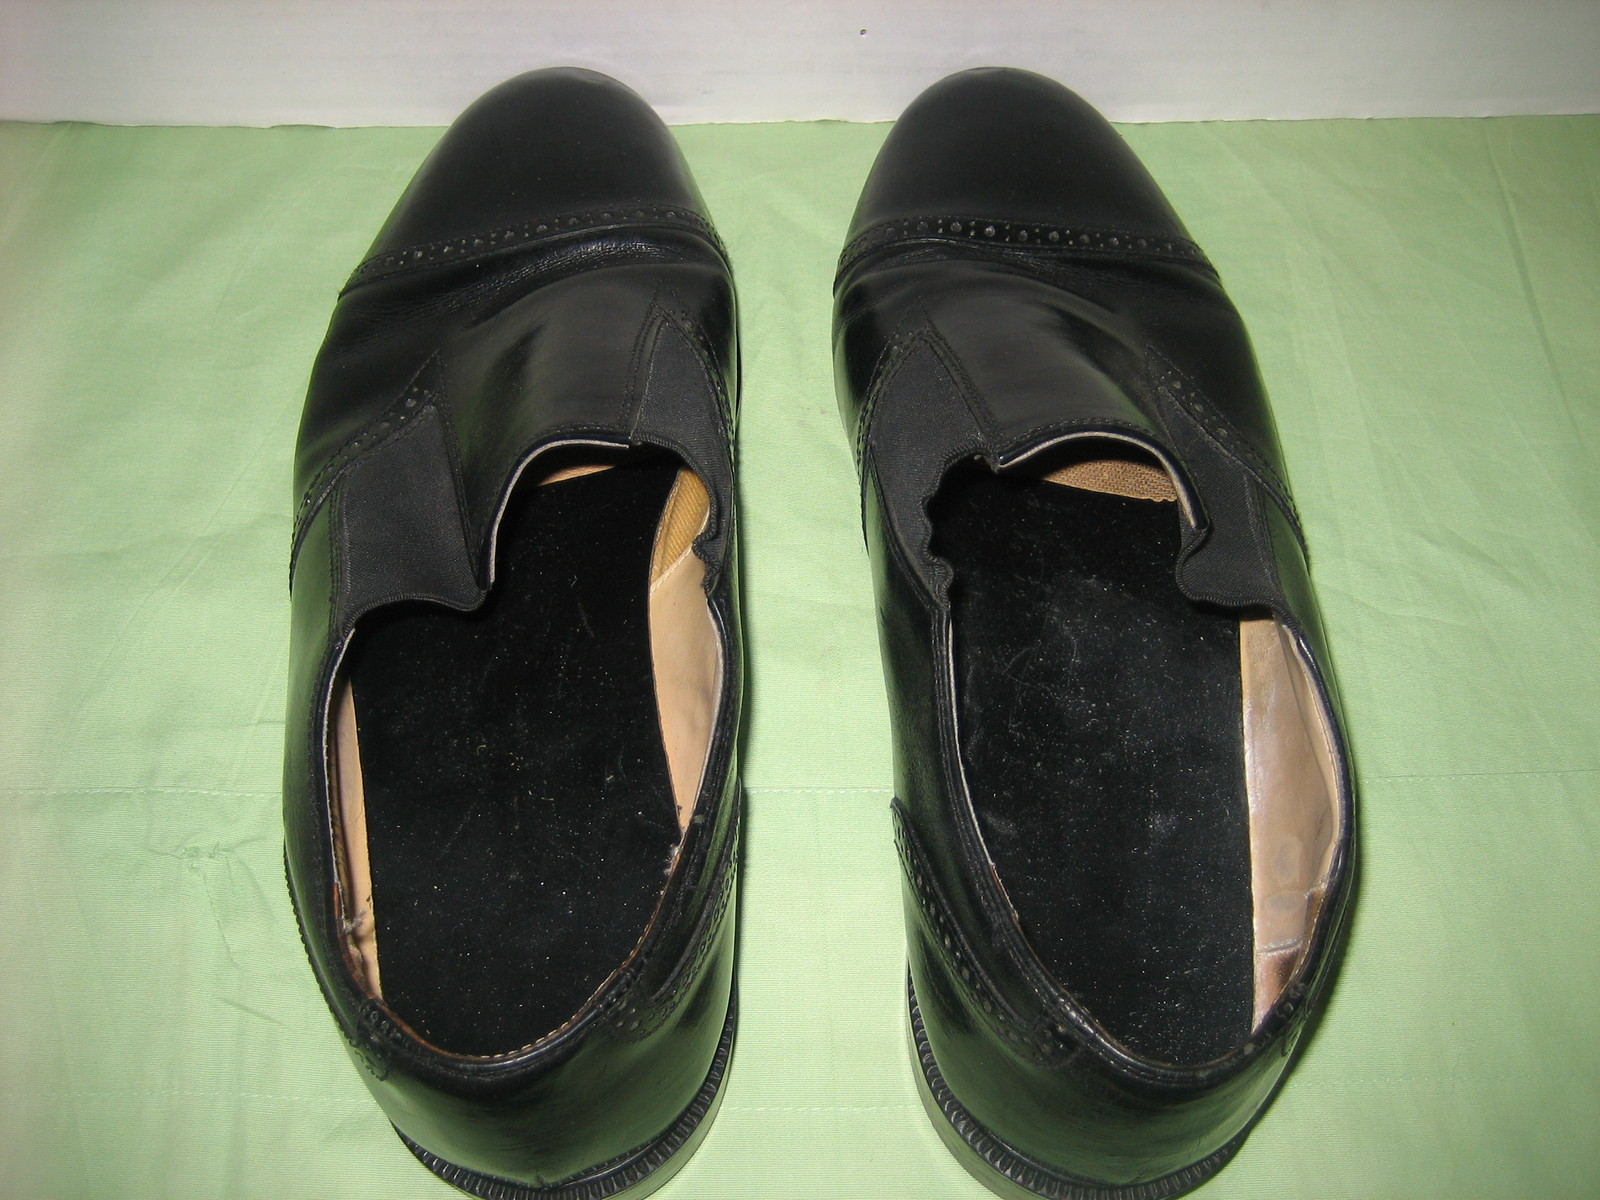 BROGUE BLACK LEATHER Italy Made Men's Dress Loafers w/ Captoes & Gores, 12 EE+